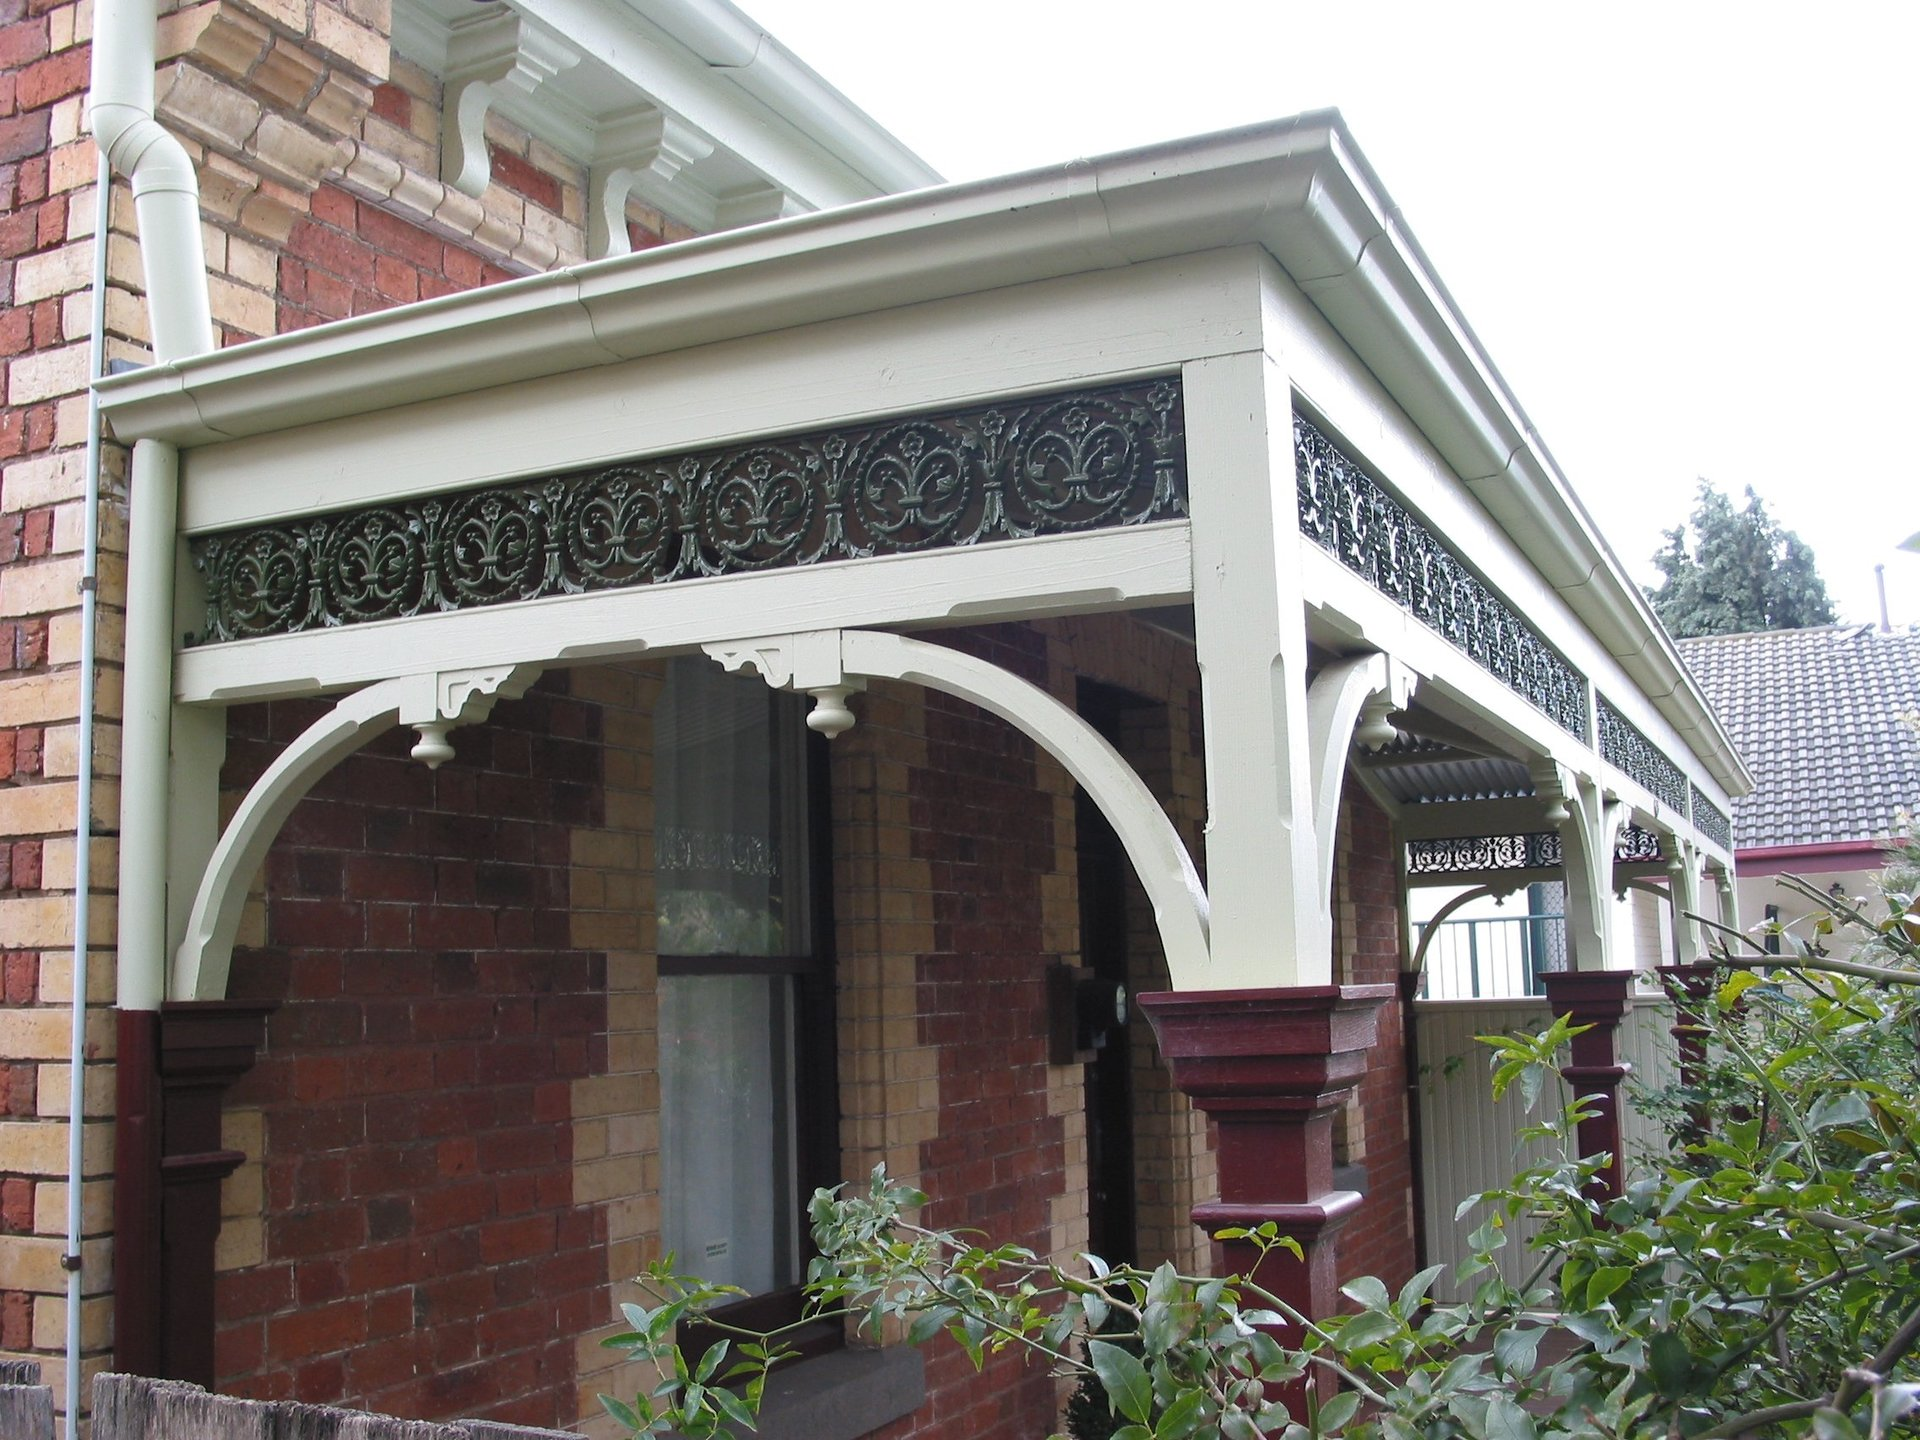 Cast iron straight lace verandah by Perry Bird Pickets